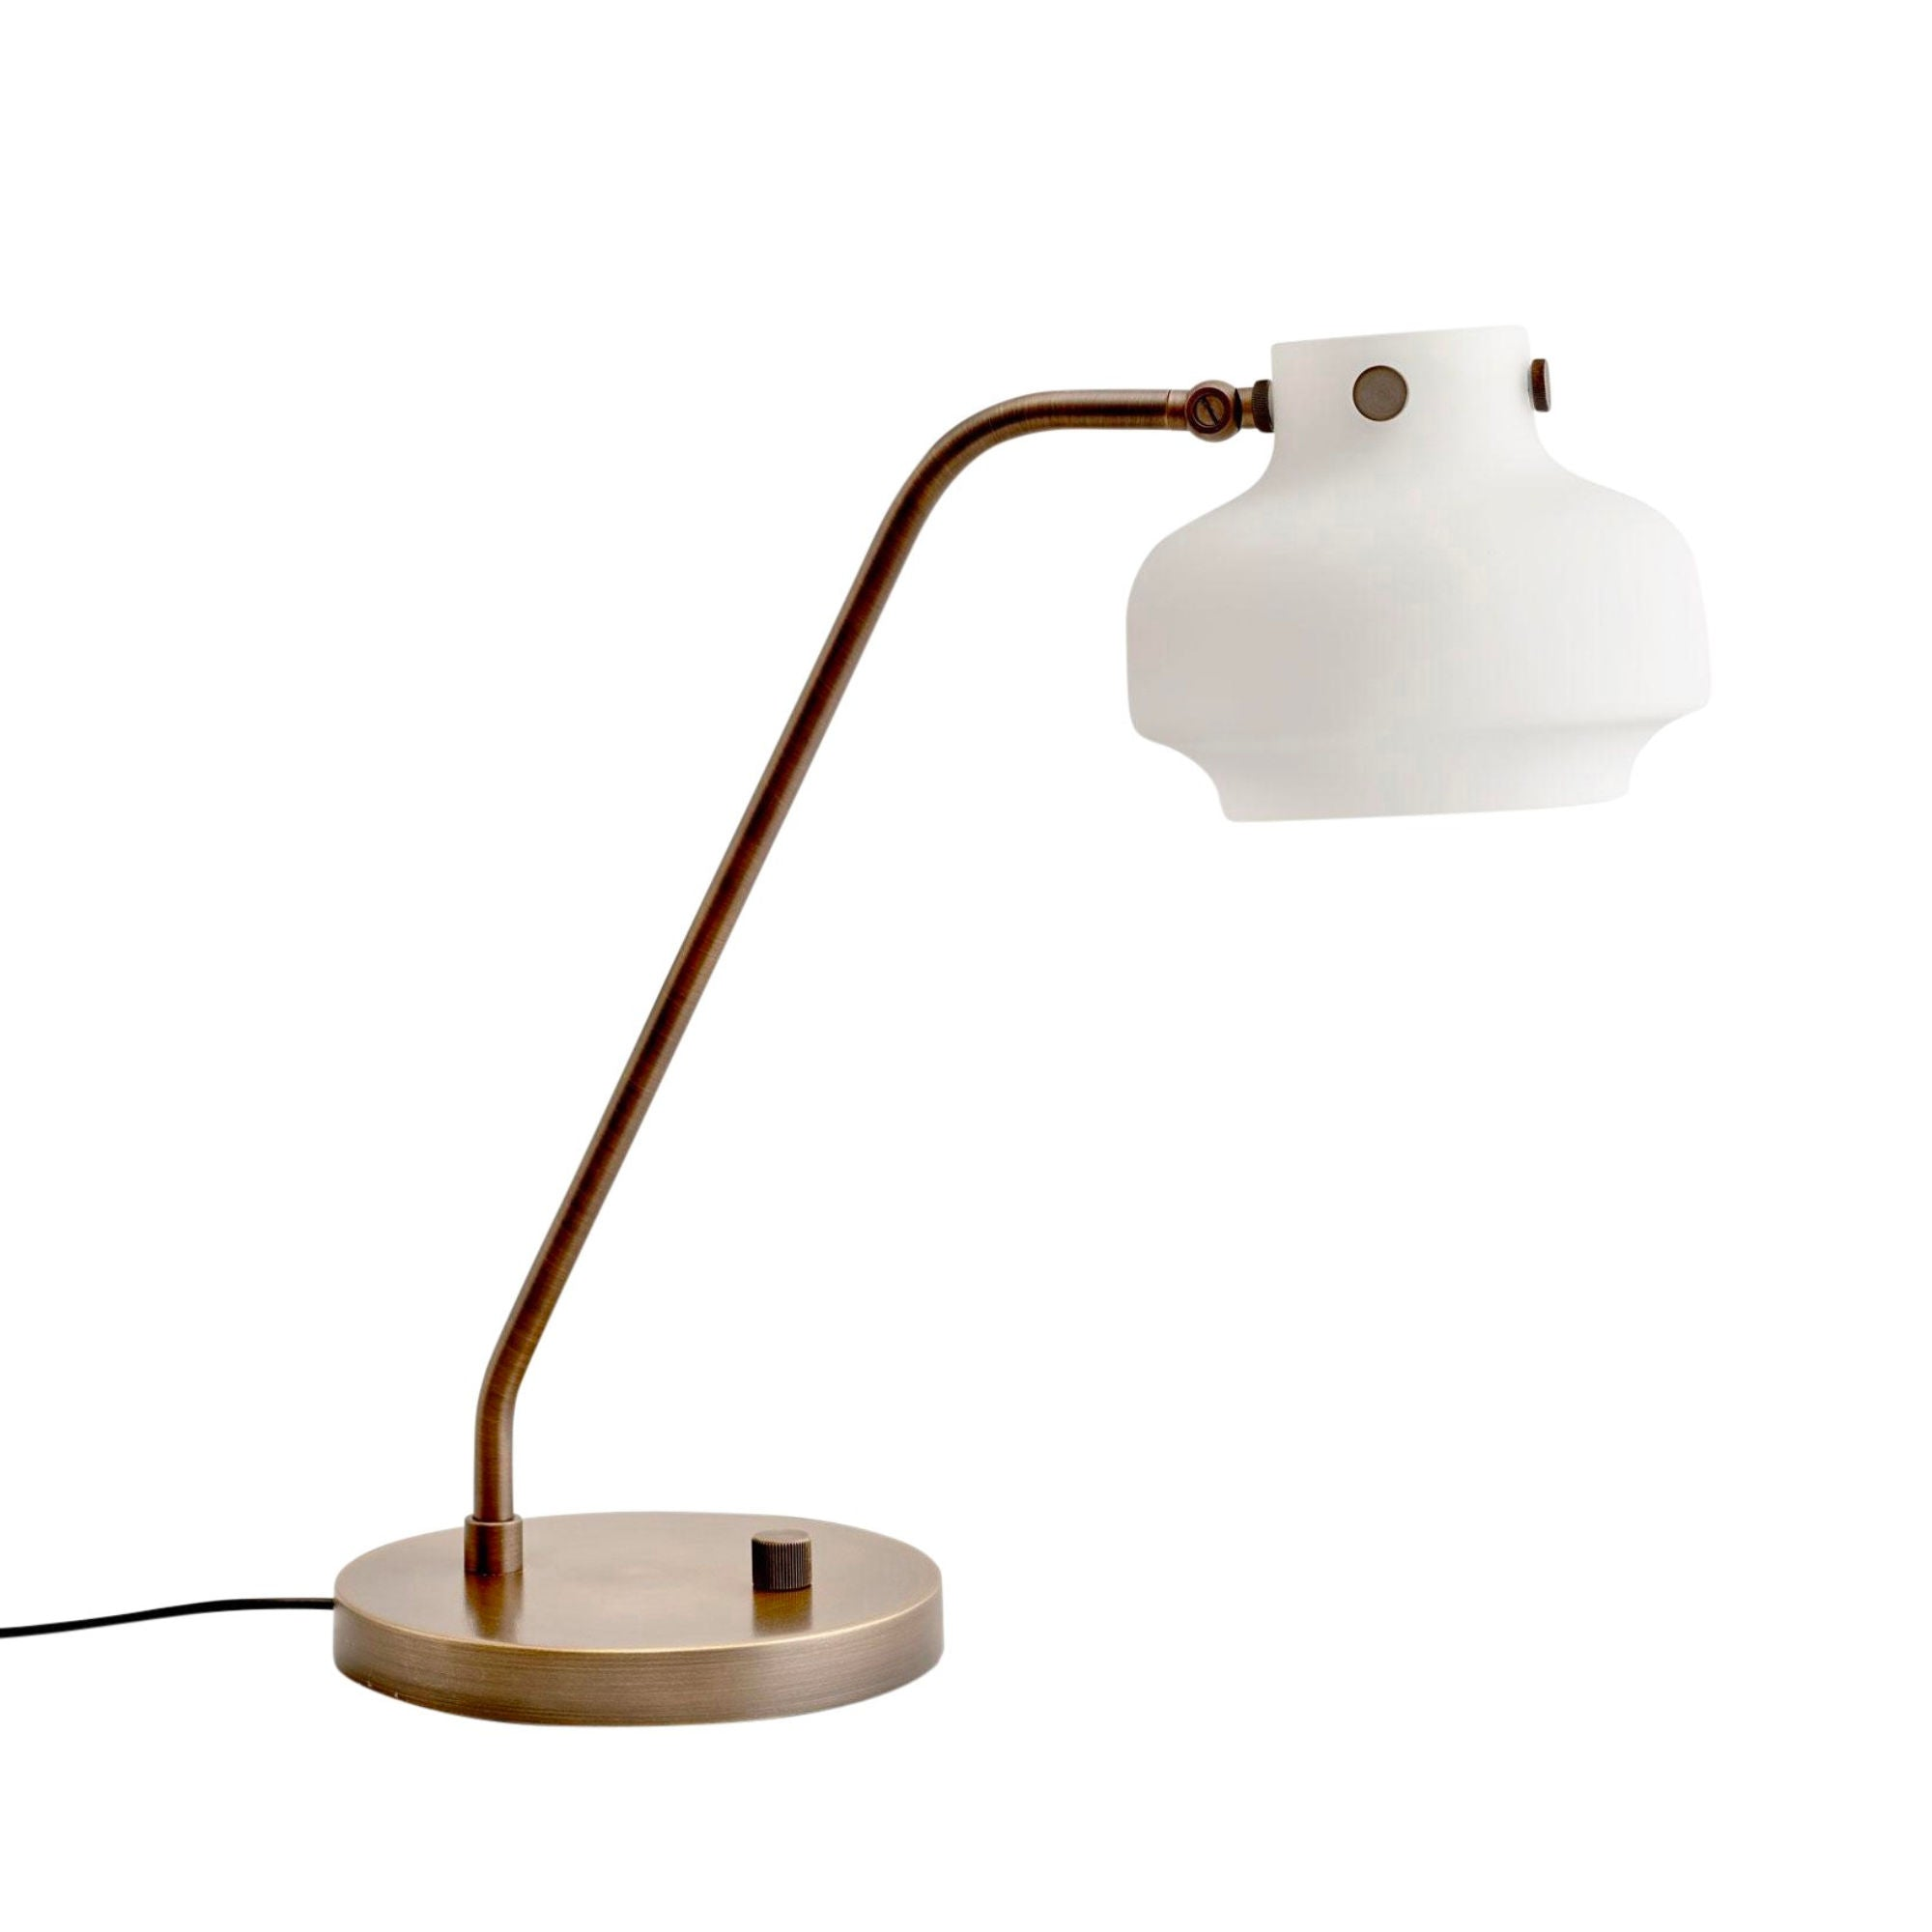 &Tradition SC15 Copenhagen table lamp